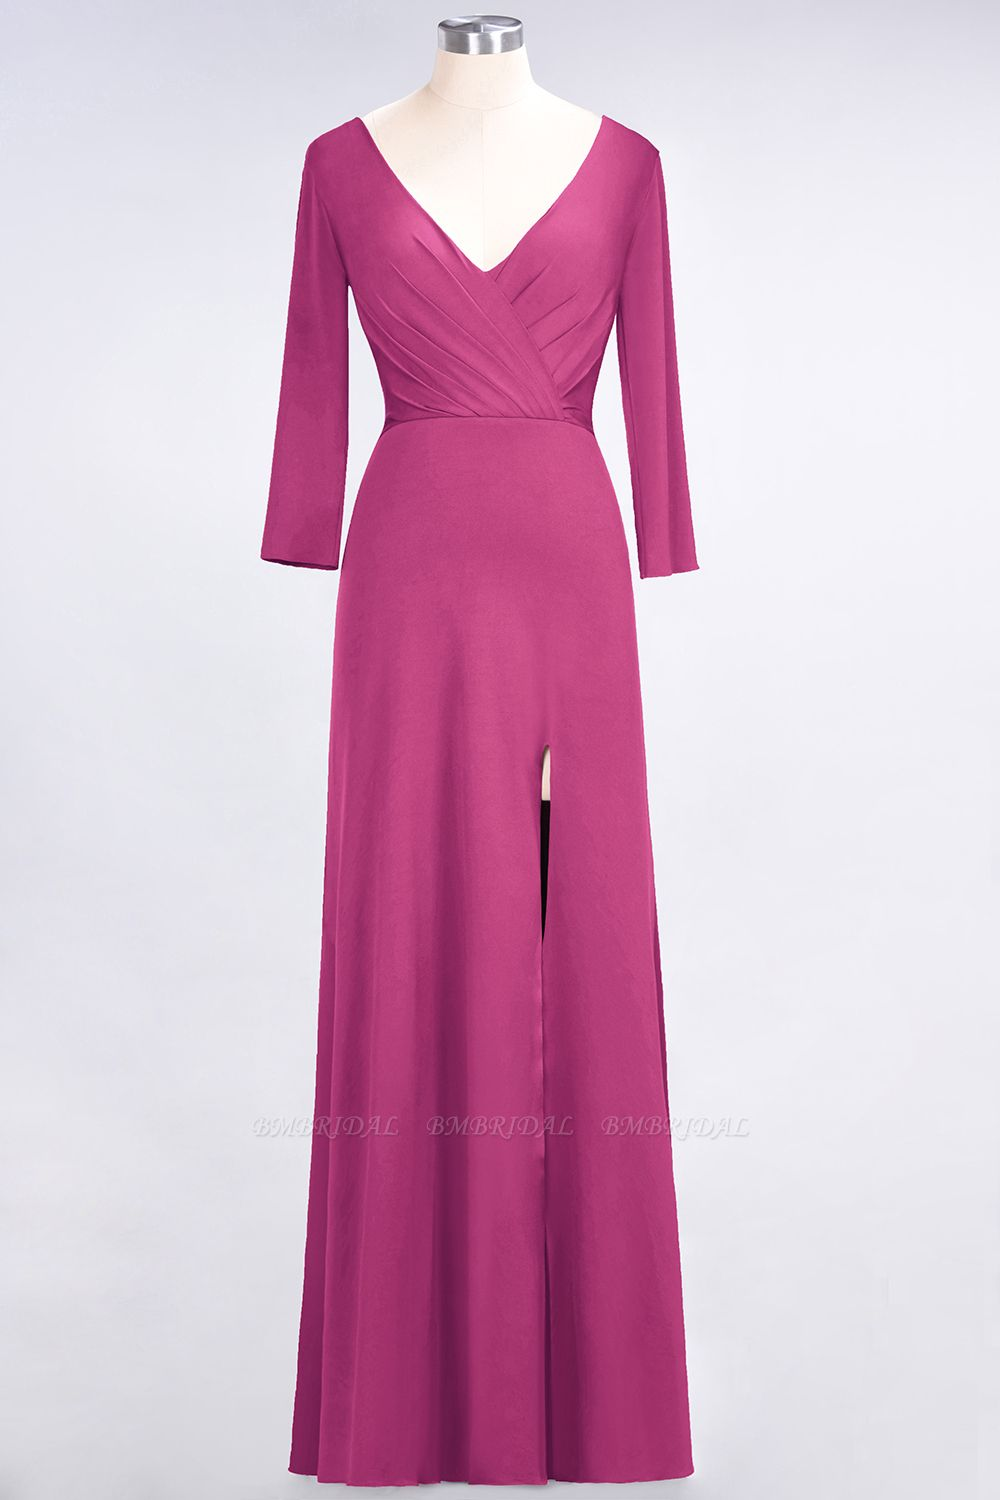 Popular Spandex Long-Sleeves Burgundy Bridesmaid Dresses with Side-Slit